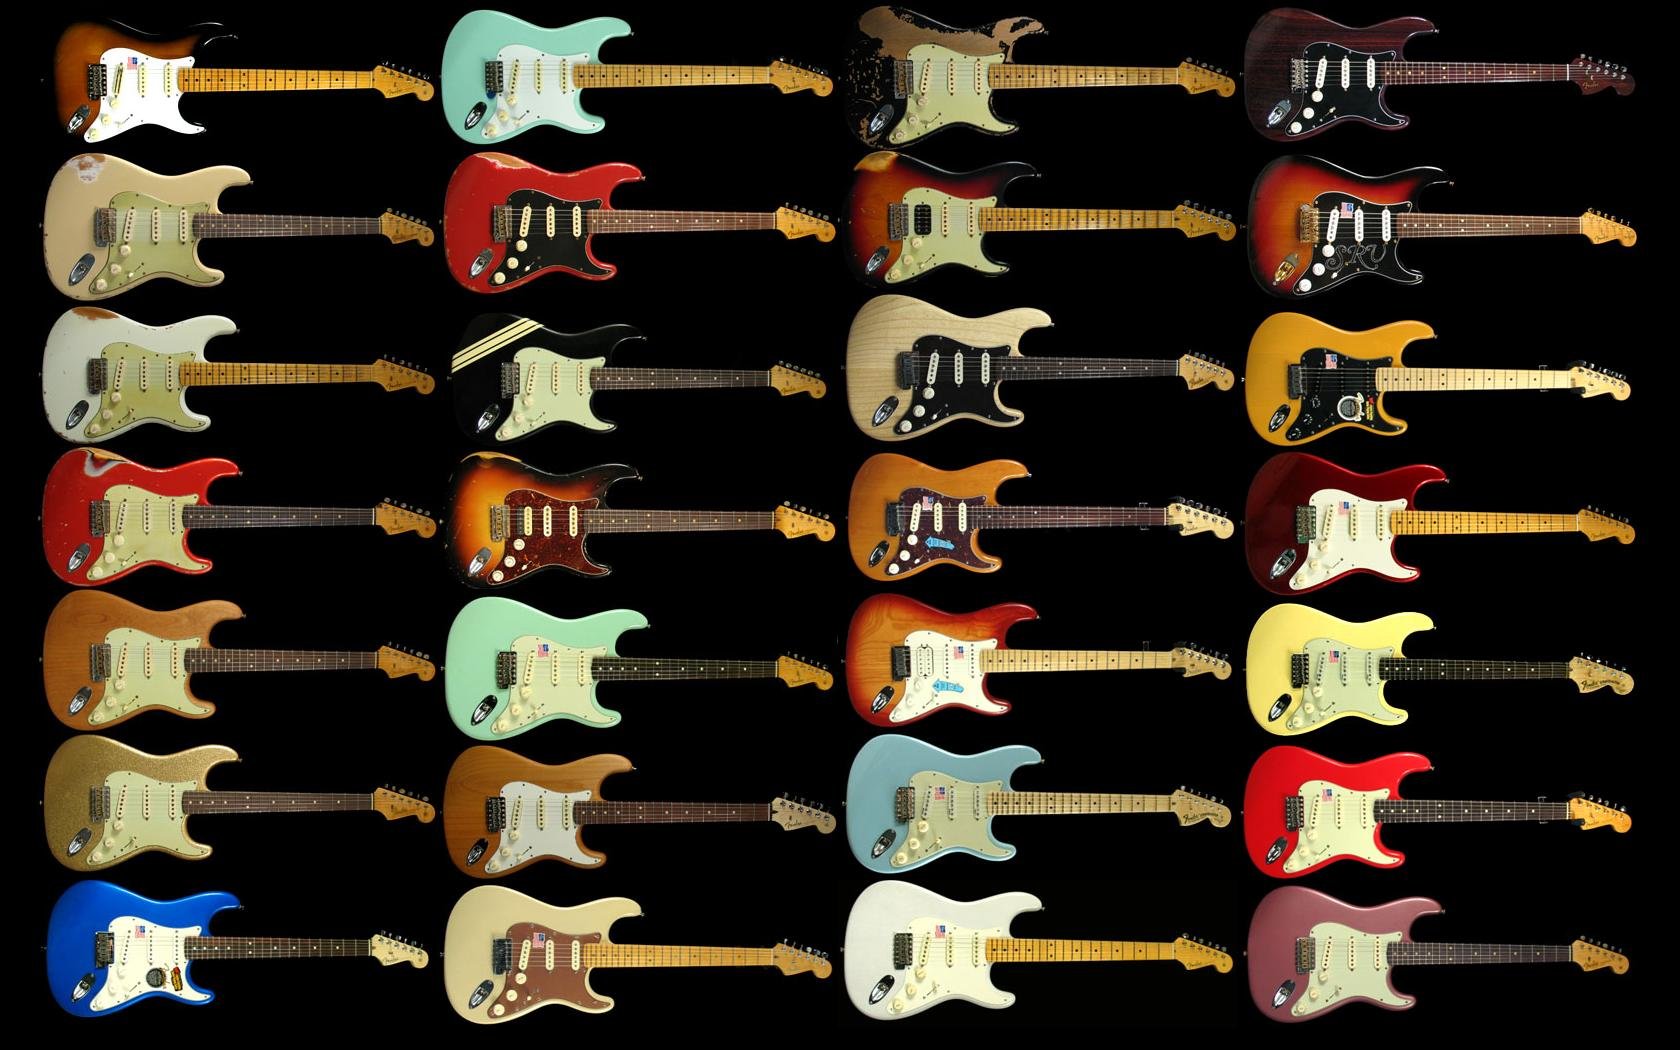 Guitar Fender Wallpaper 27004 Hd Wallpapers in Music   Imagesci 1680x1050